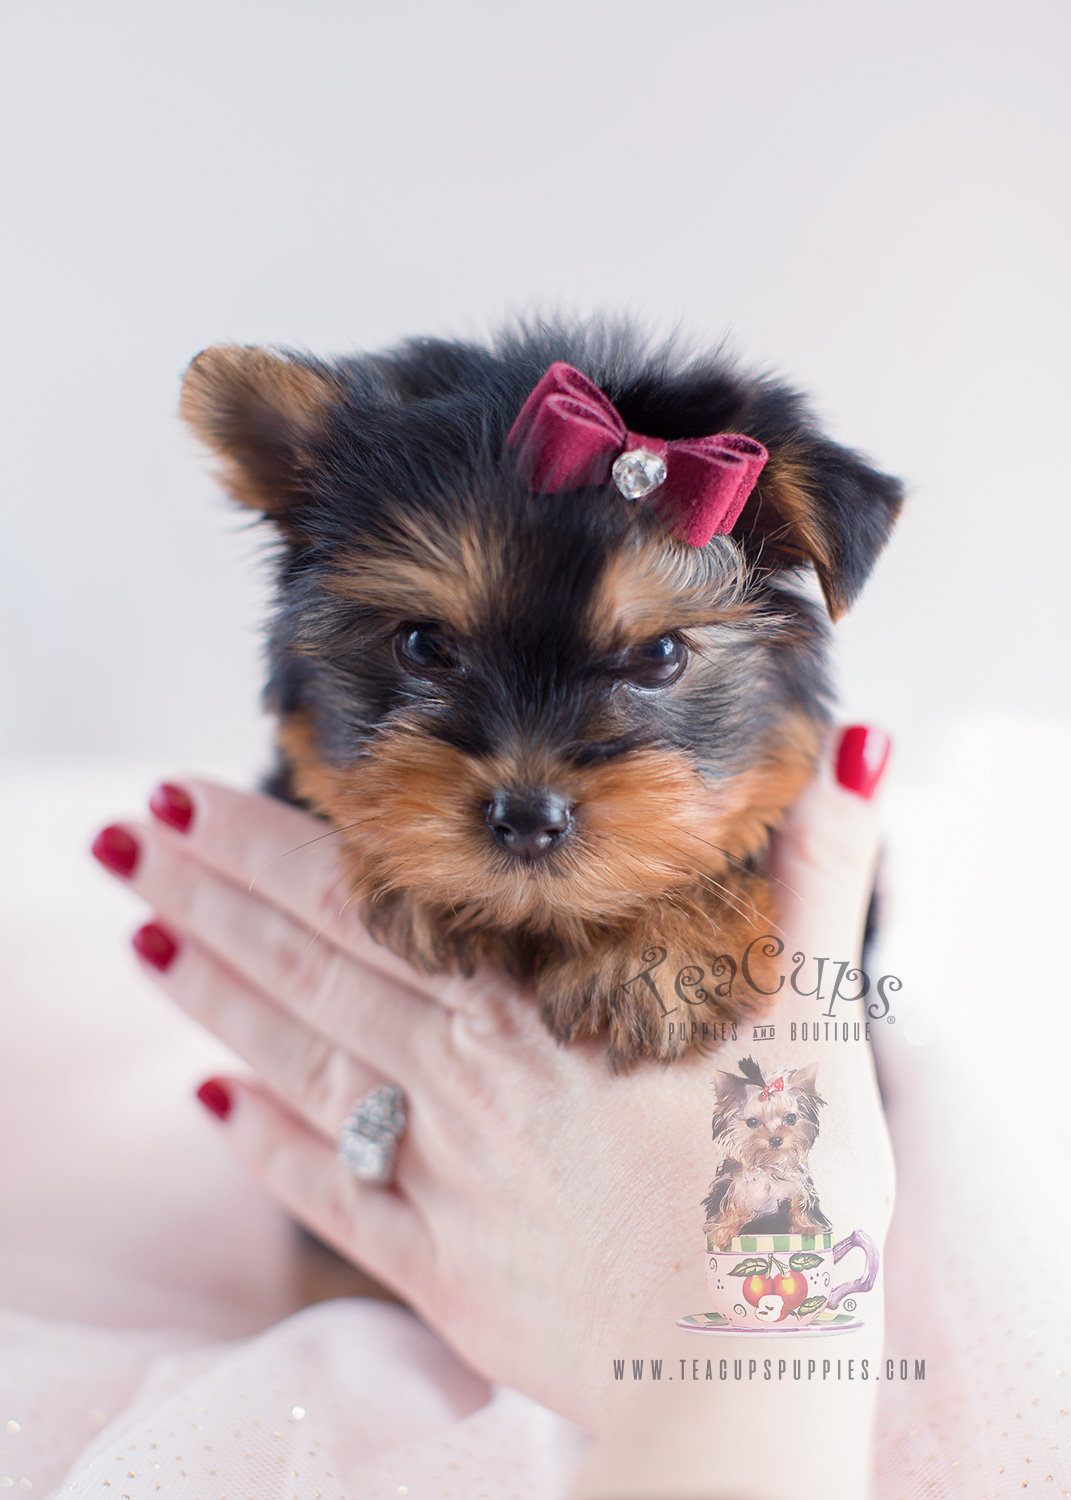 Yorkie Puppy For Sale #042 Teacup Puppies Toy